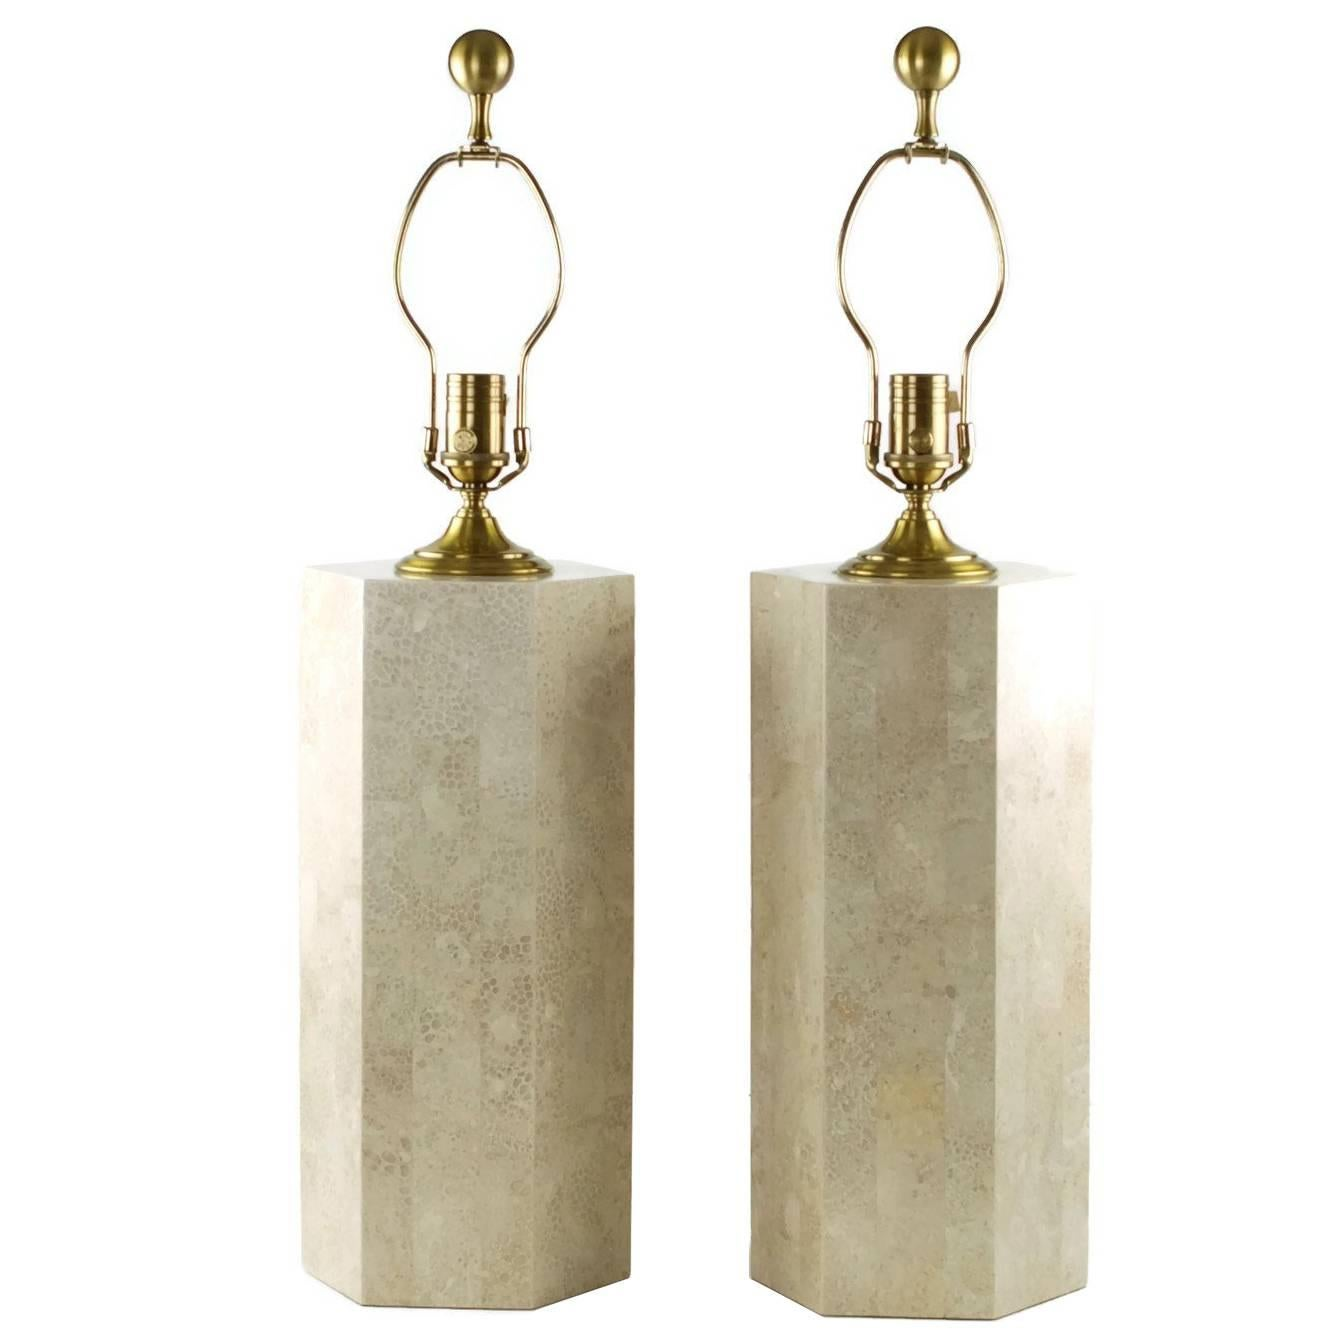 Pair Of Wildwood Tessellated Stone Table Lamps With Brass Trim For Sale